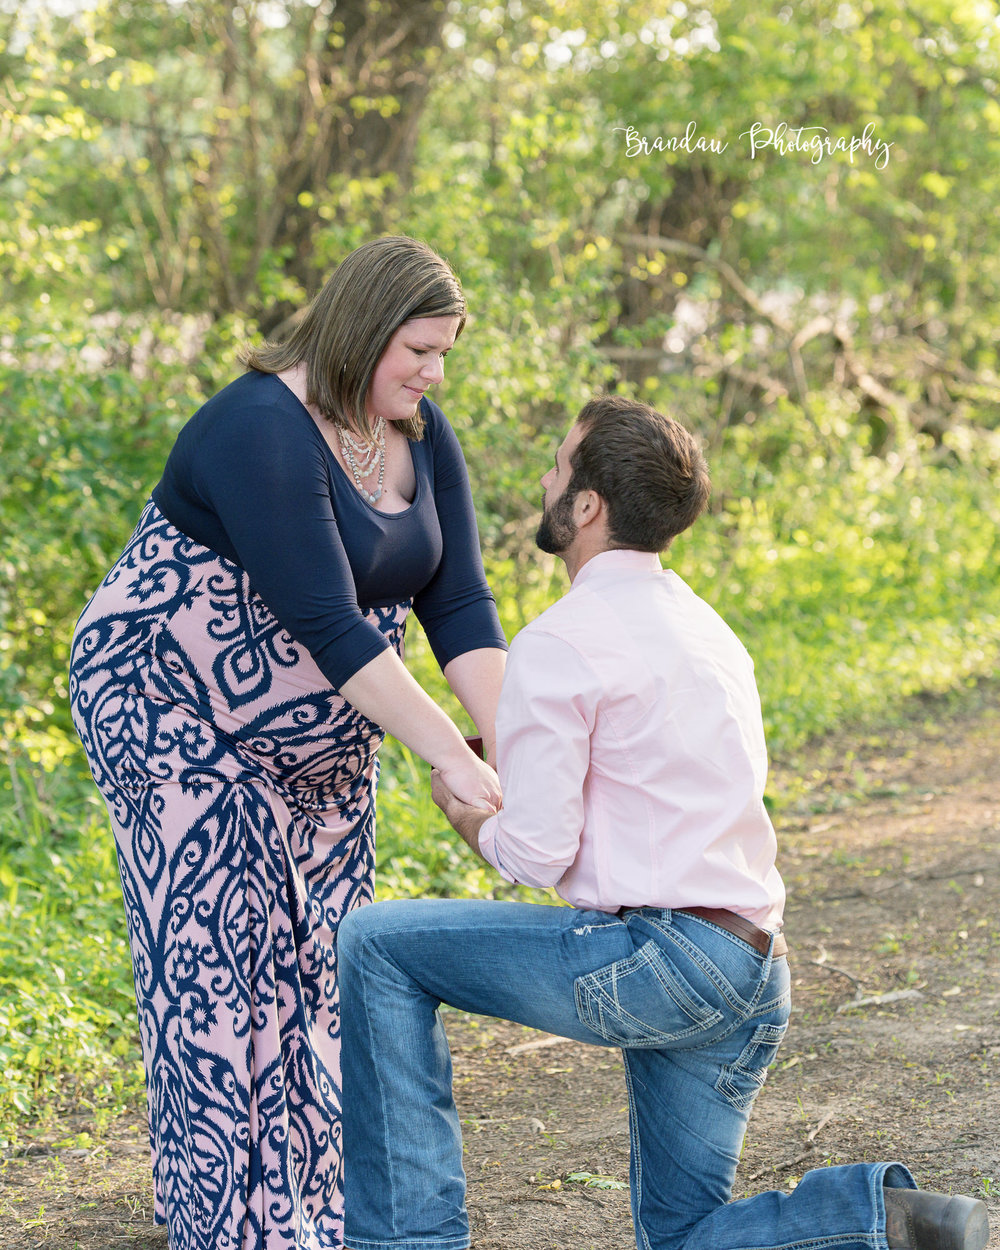 Proposal_Brandau Photography-7.jpg